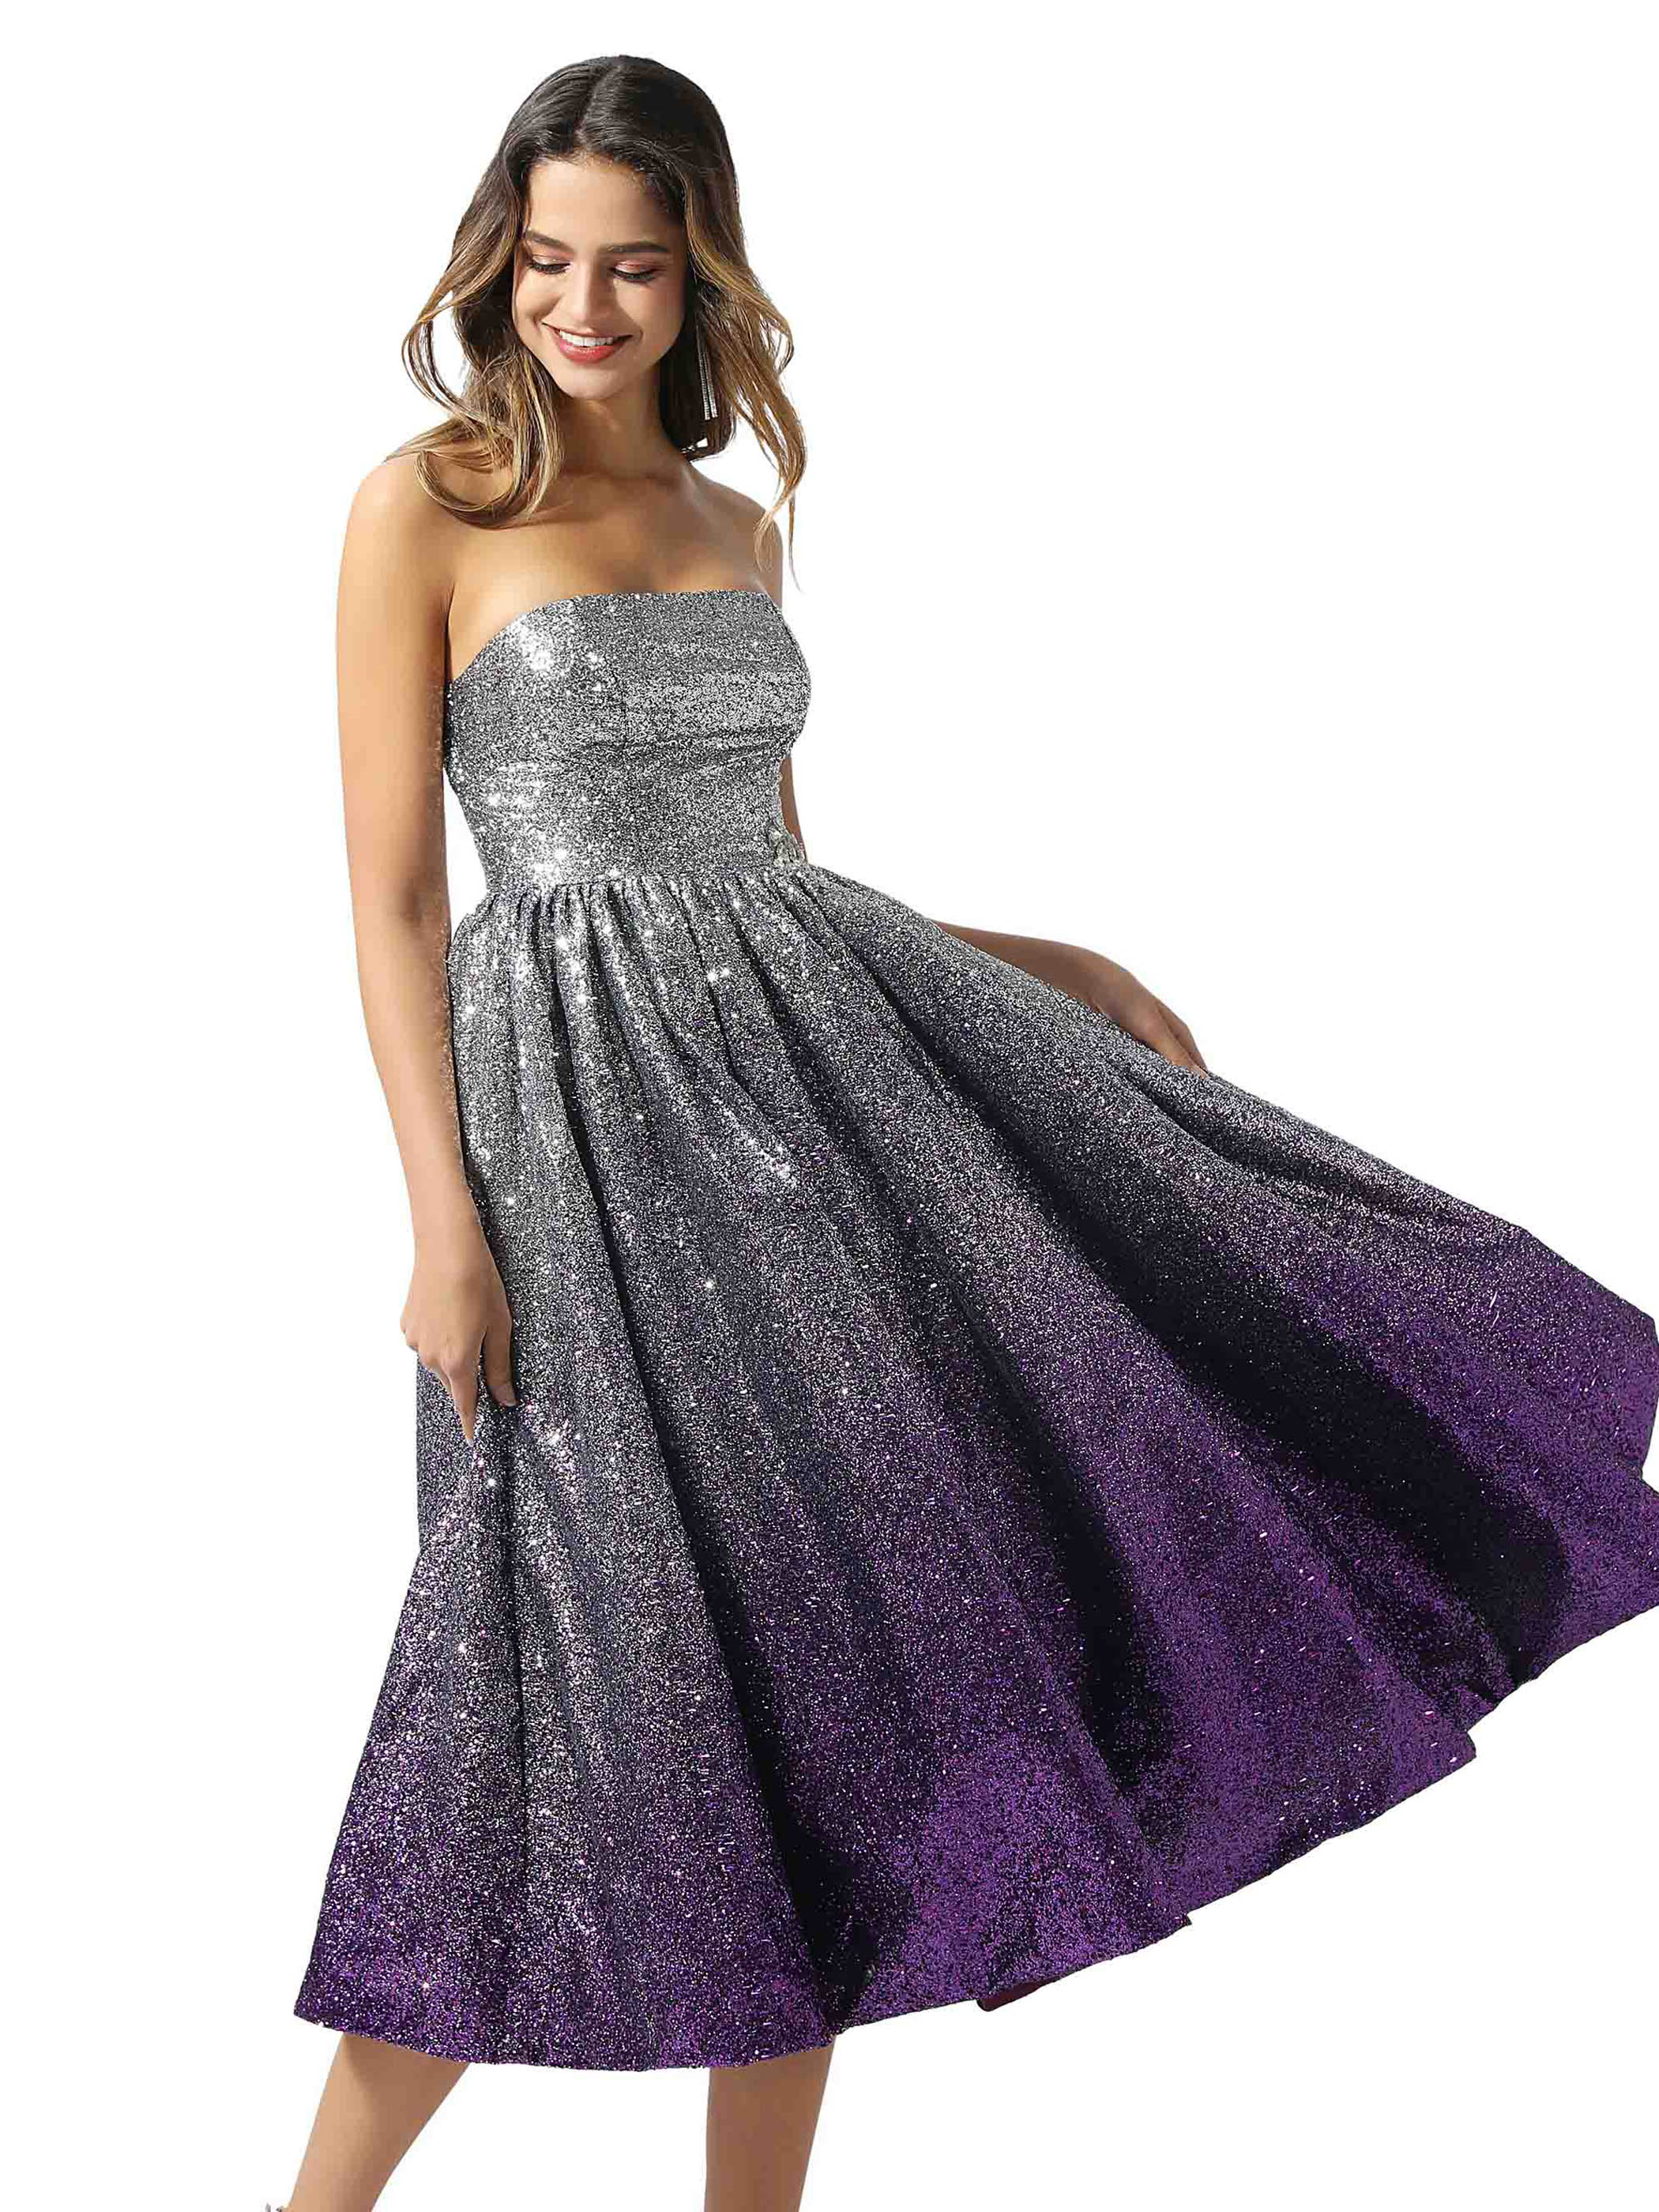 Tanpell Sequins Cocktail Dress A-Line Strapless Sleeveless Tea-Length Women Prom Party Formal Design Cocktail Dress 2020